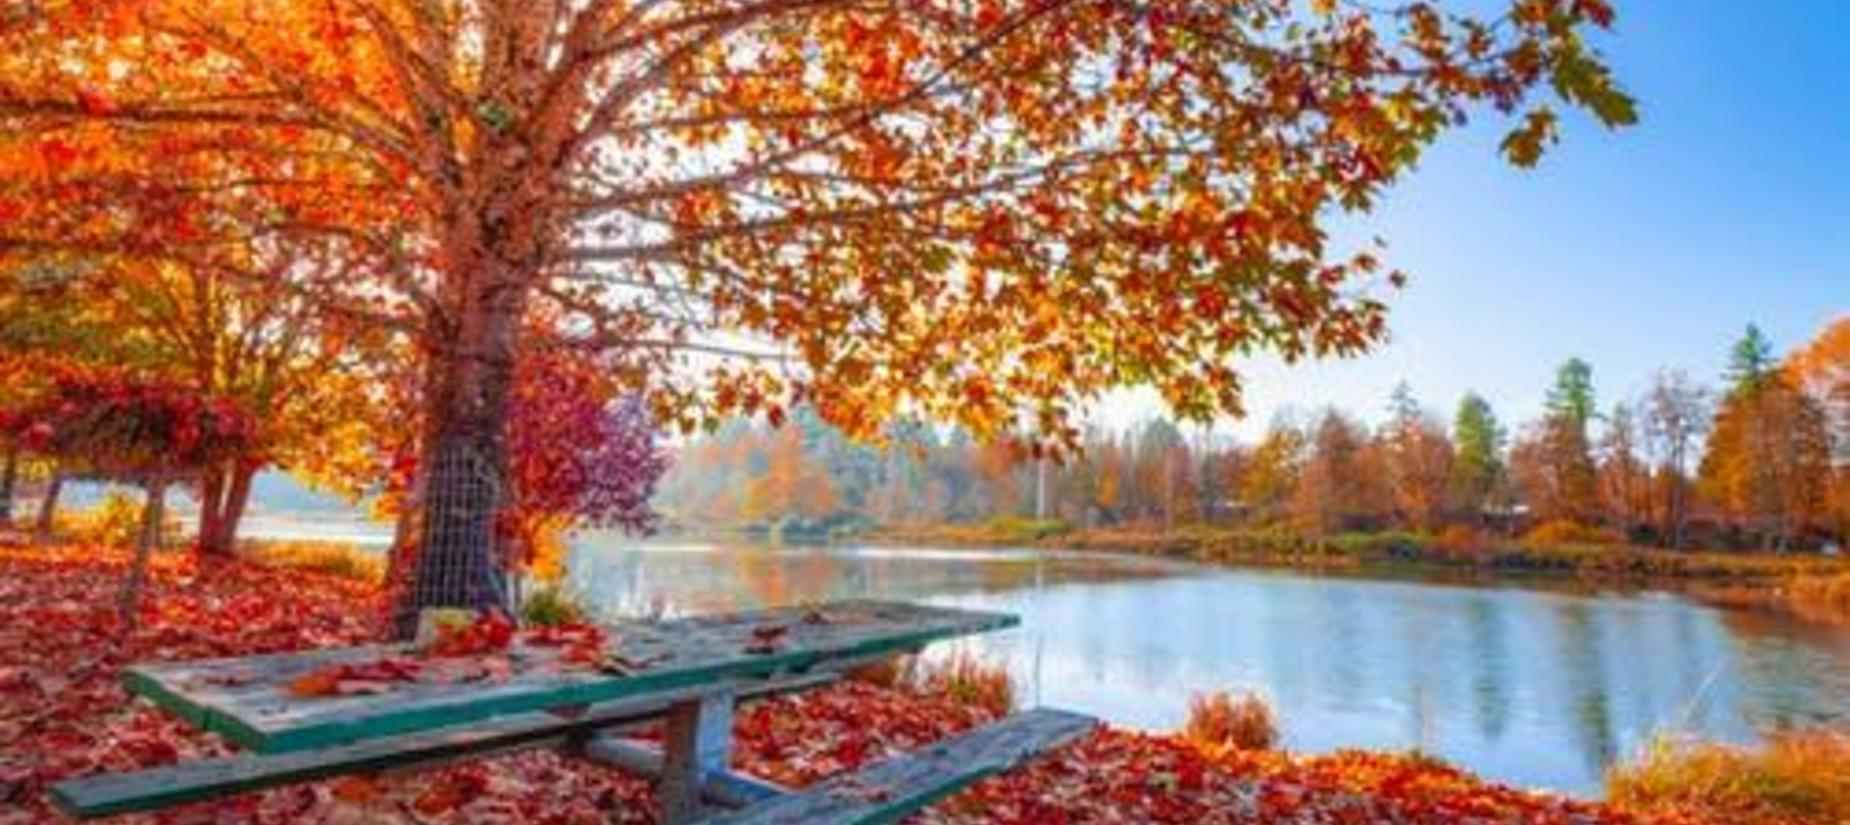 fall leaves, trees, pond, picnic table